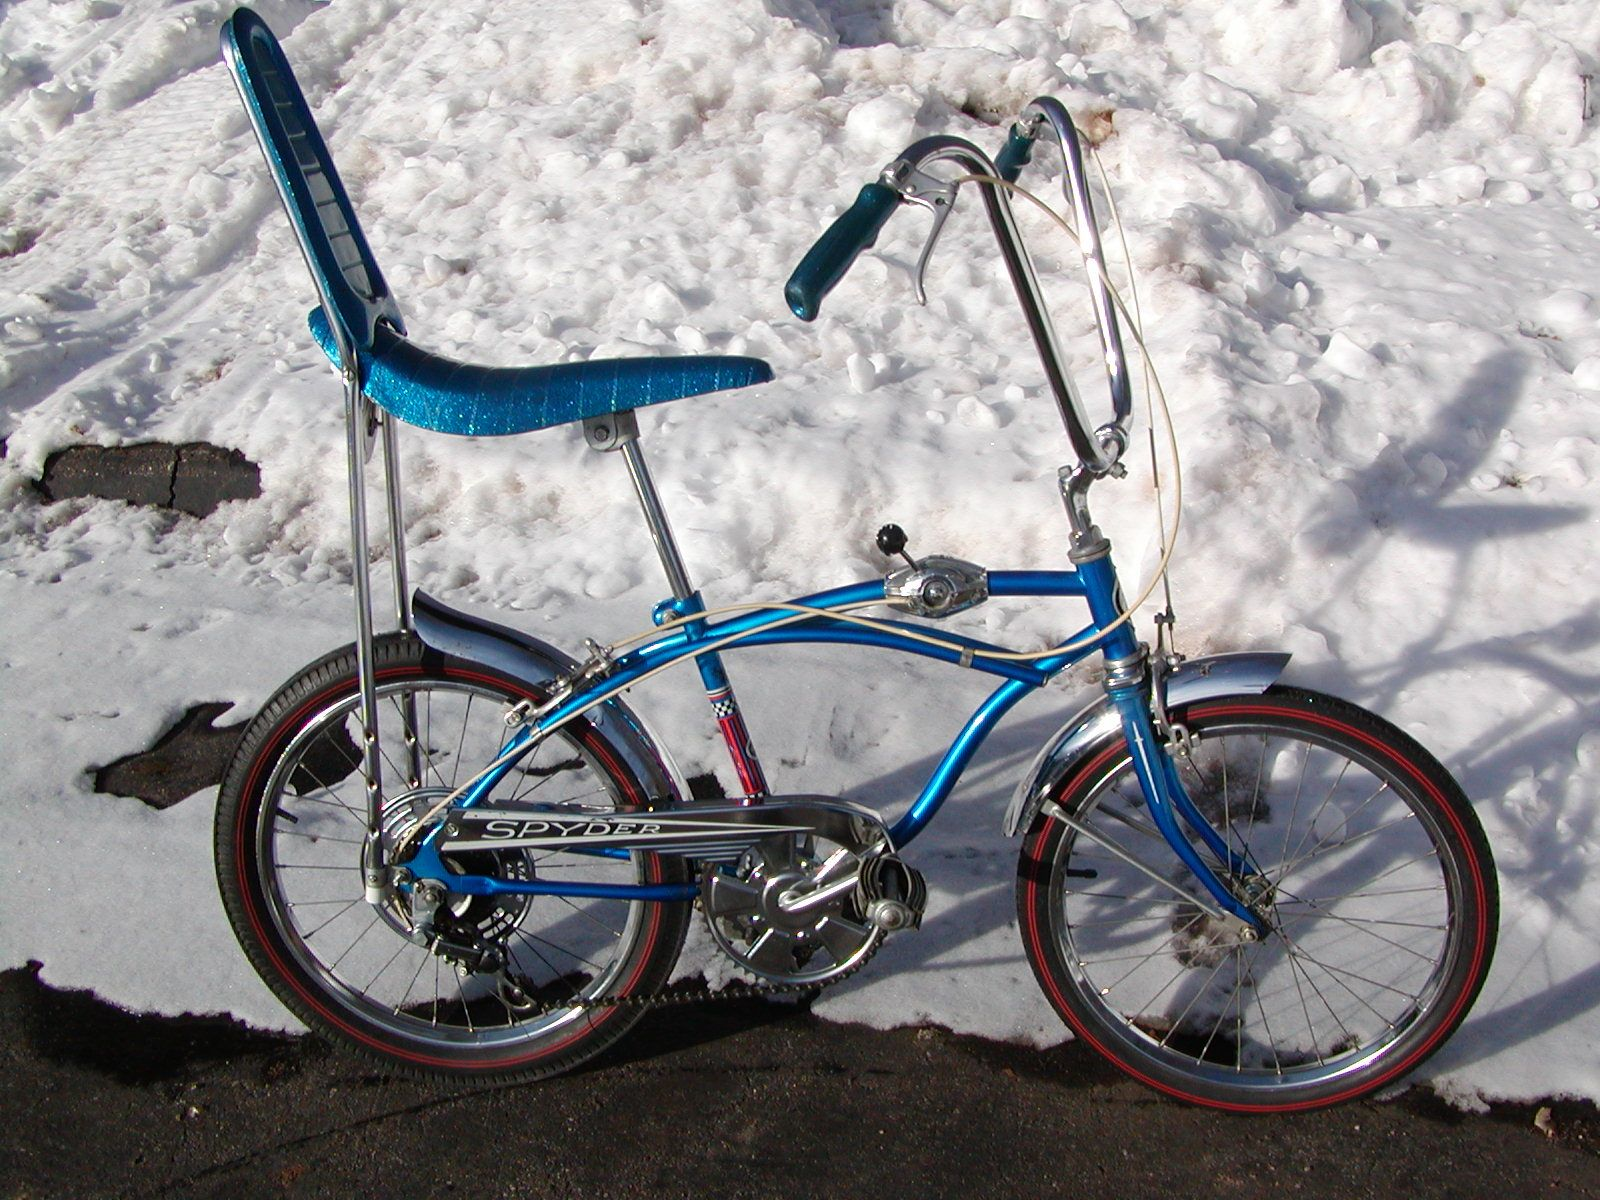 1960 sears bicycle - Sears Spyder 5spd I Got This Identicle Bike When I Was 9 For Christmas